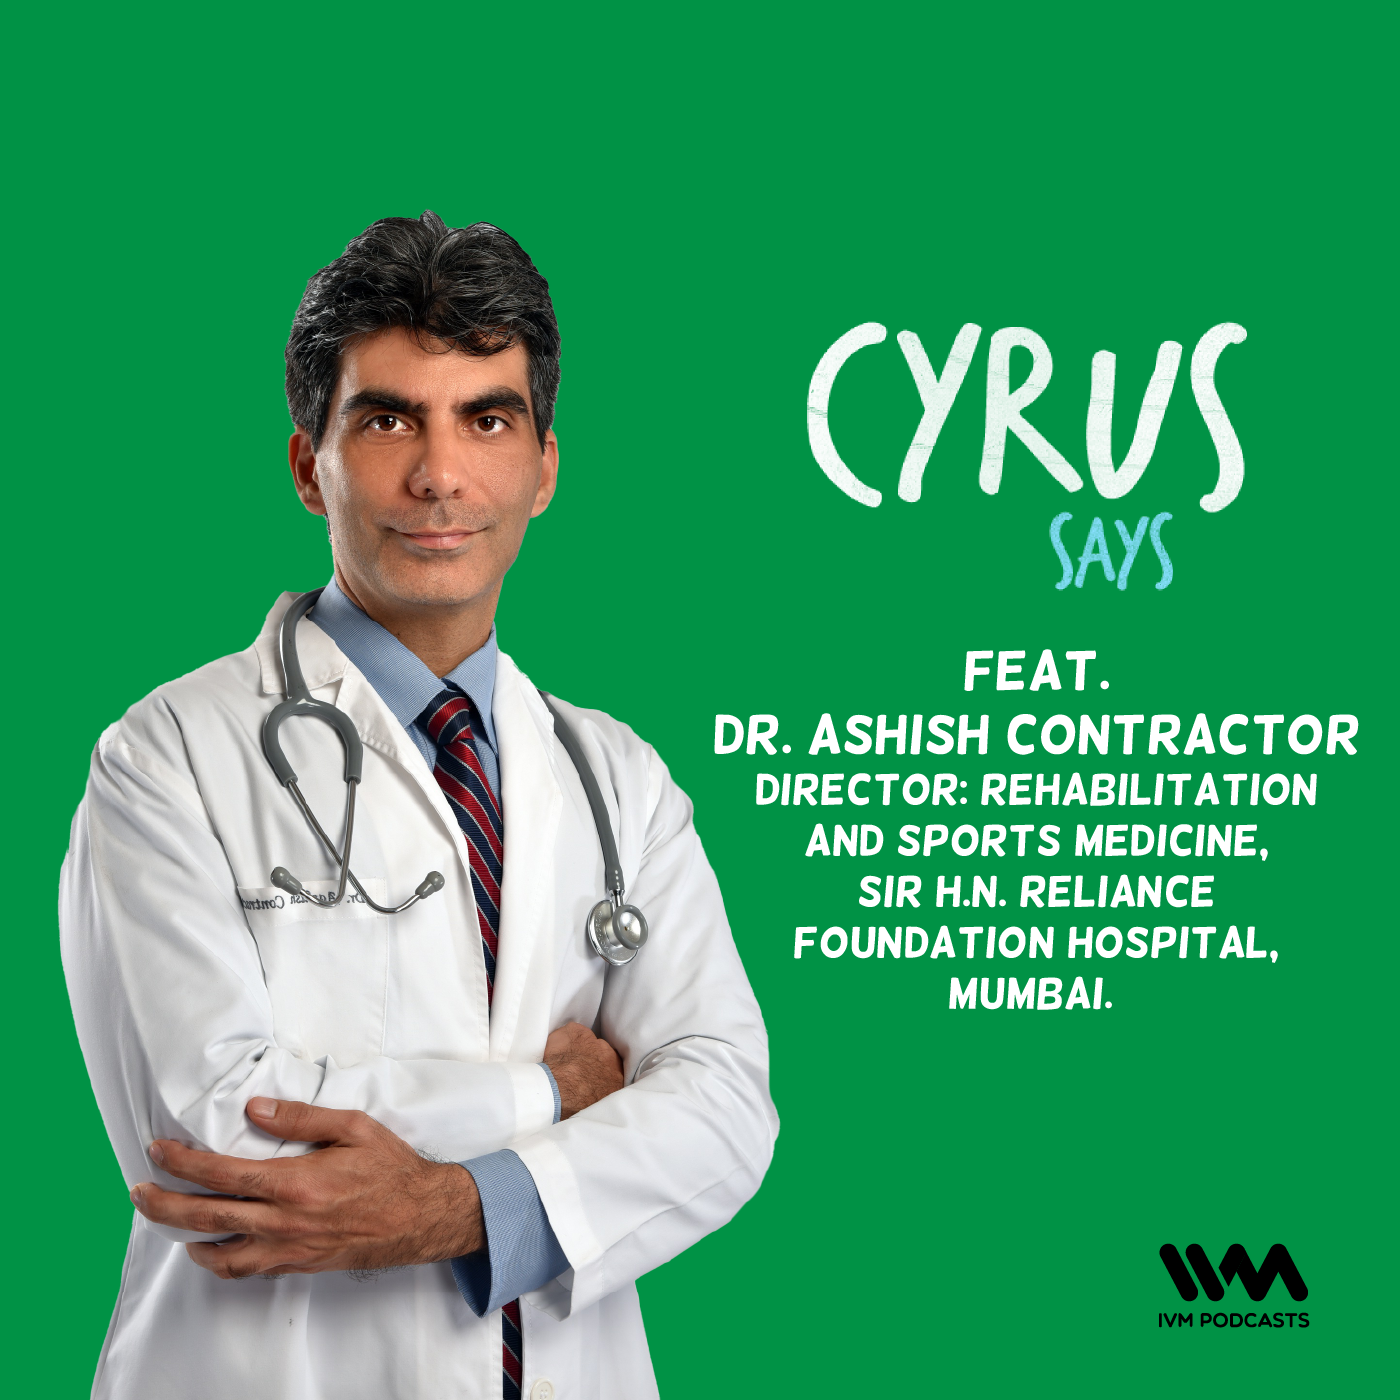 Ep. 624: feat. Dr. Ashish Contractor